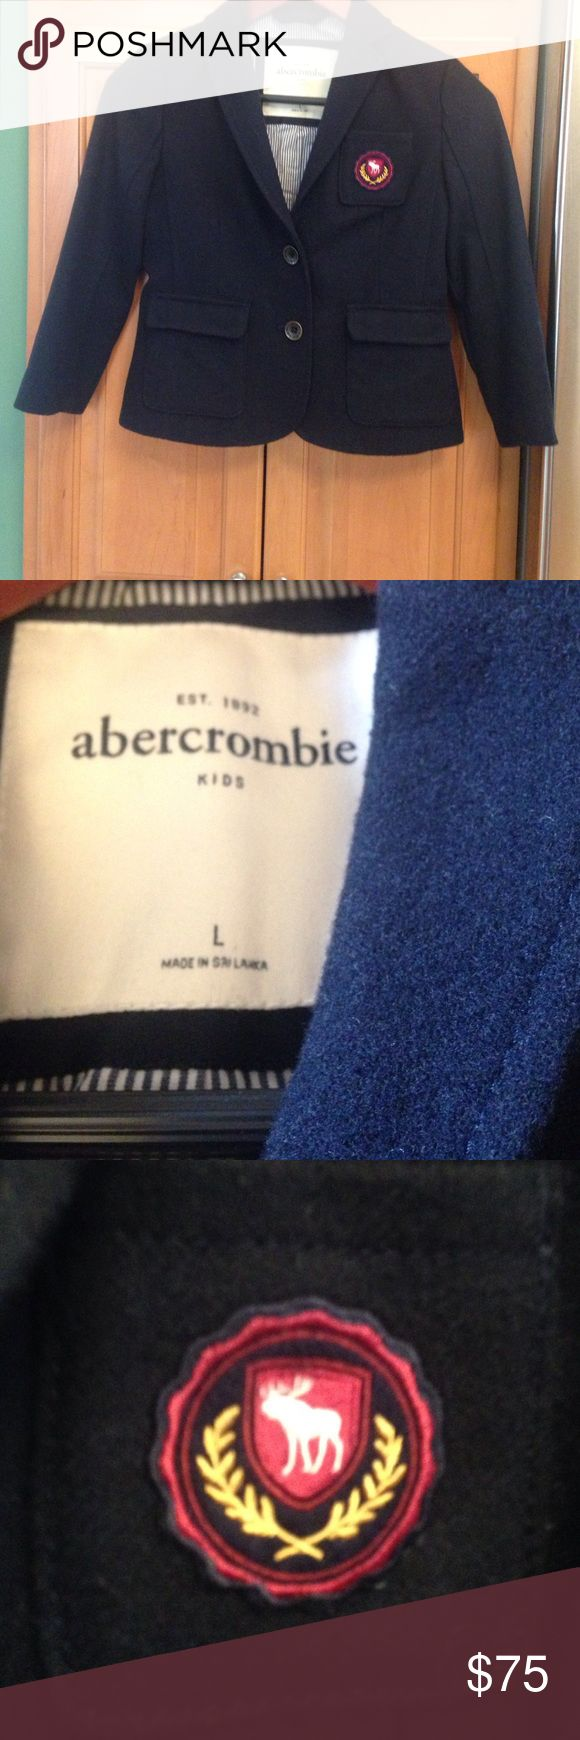 Abercrombie Girls Navy Blazer L Worn once. This darling coat is lined. It is a wool fabric. abercrombie kids Jackets & Coats Blazers